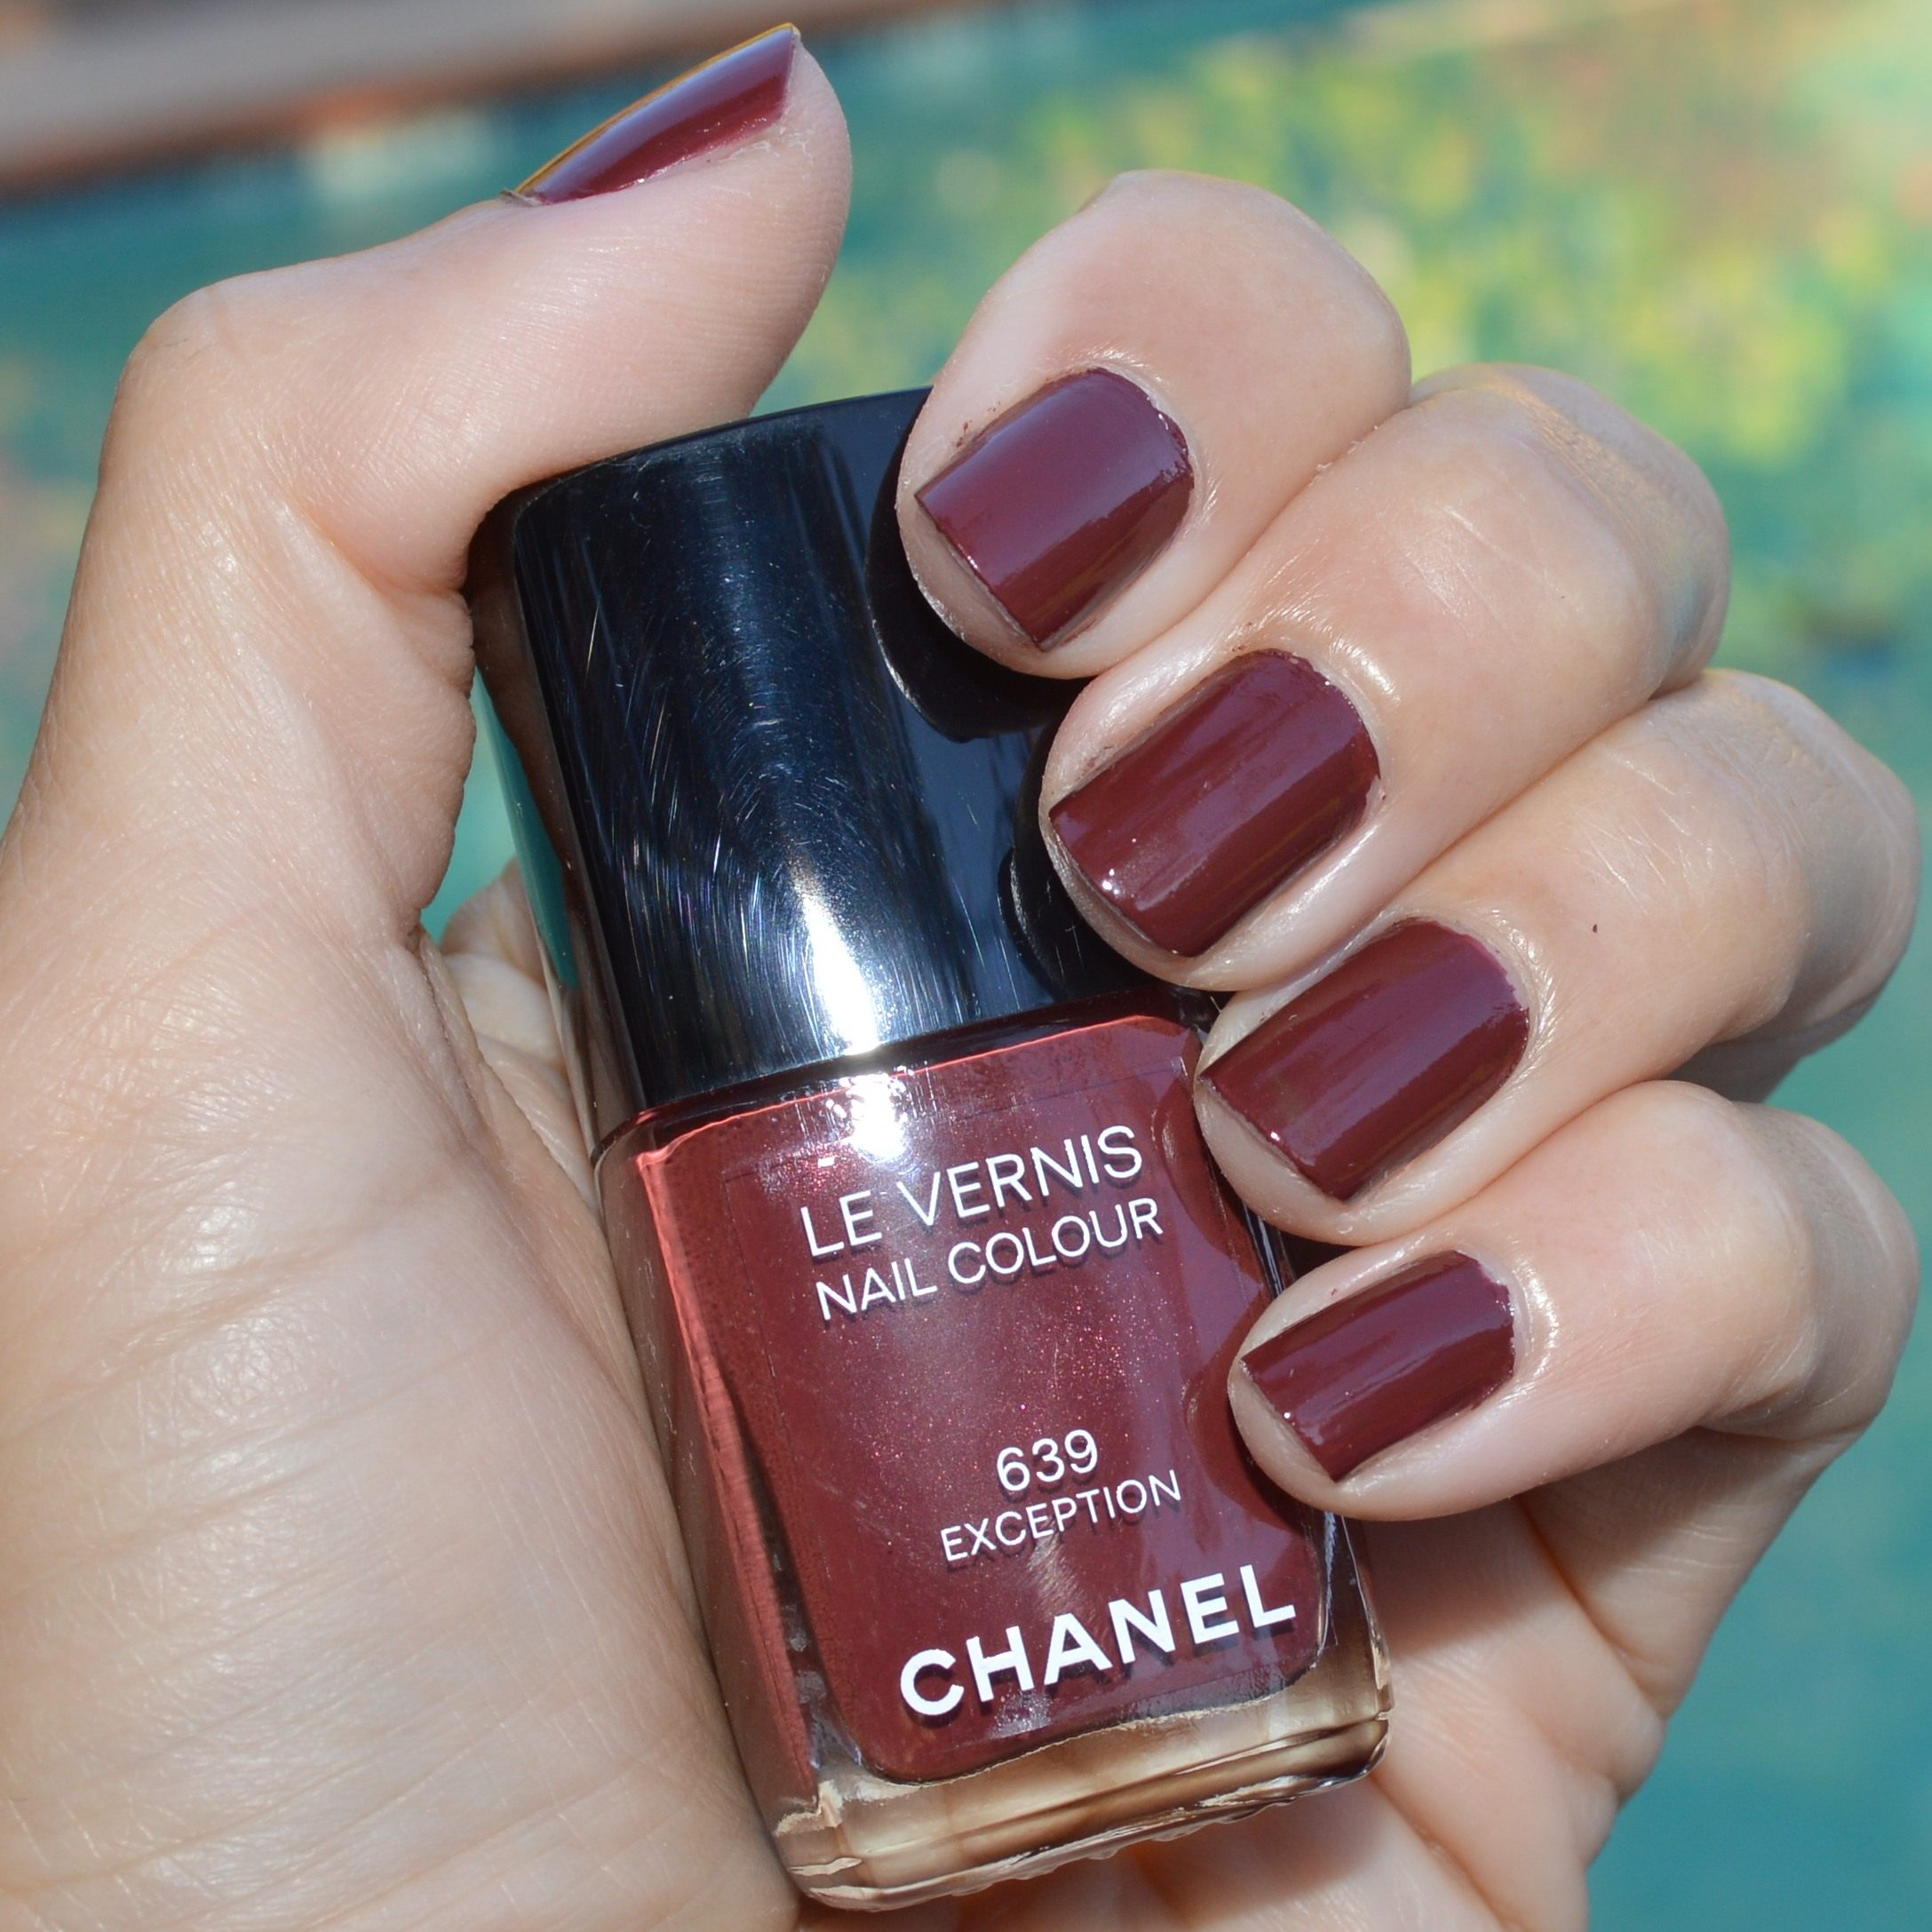 Chanel Exception nail polish late fall 2014 review | Bay Area ...